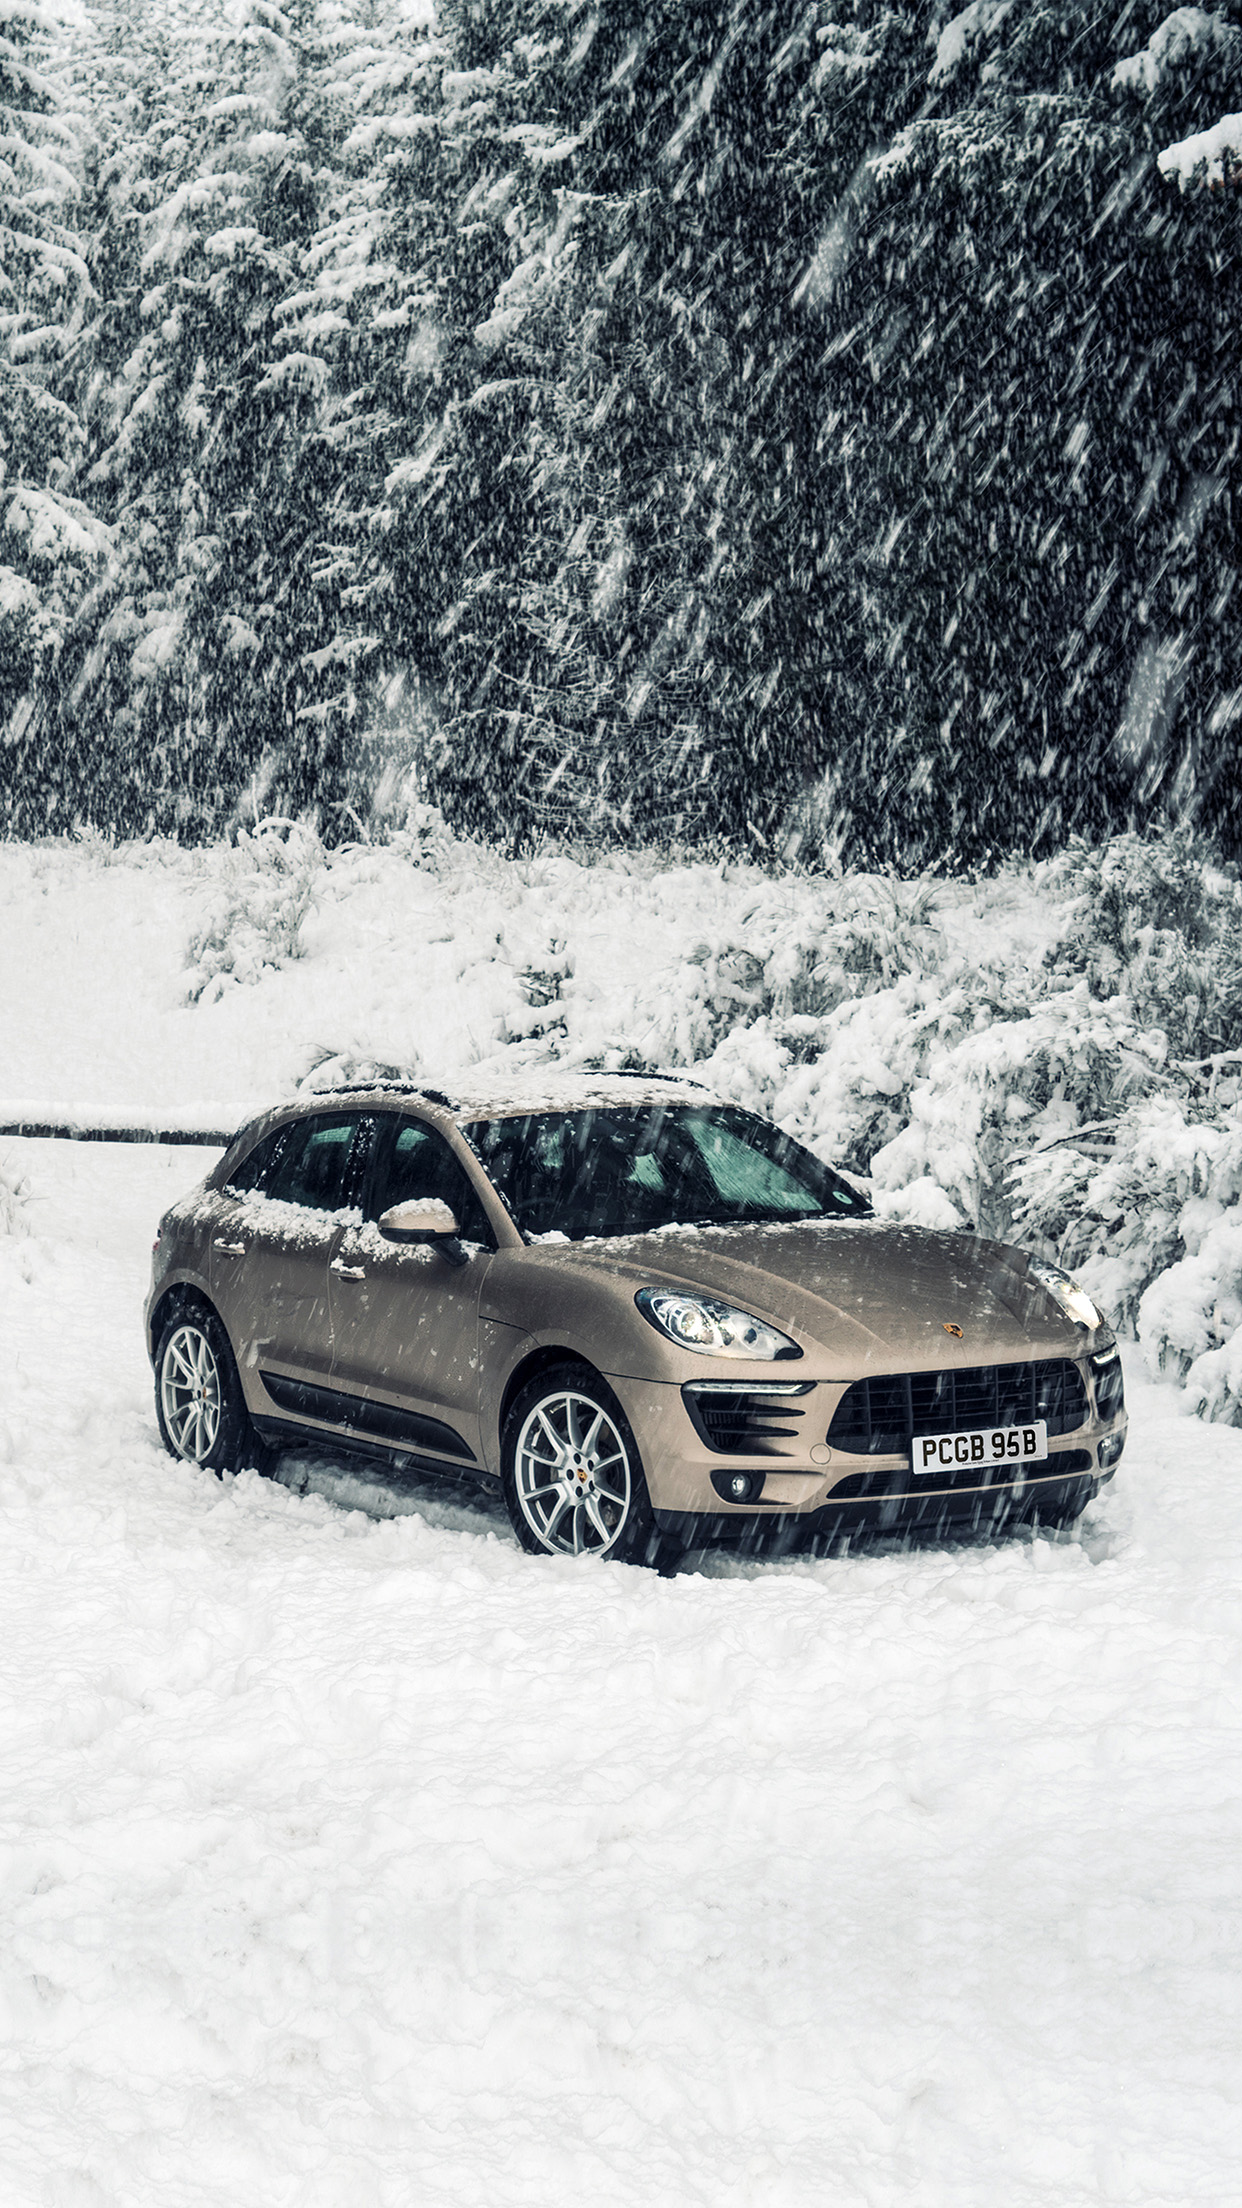 Htc Black Wallpaper Aq51 Porche Winter Snow Car Wallpaper